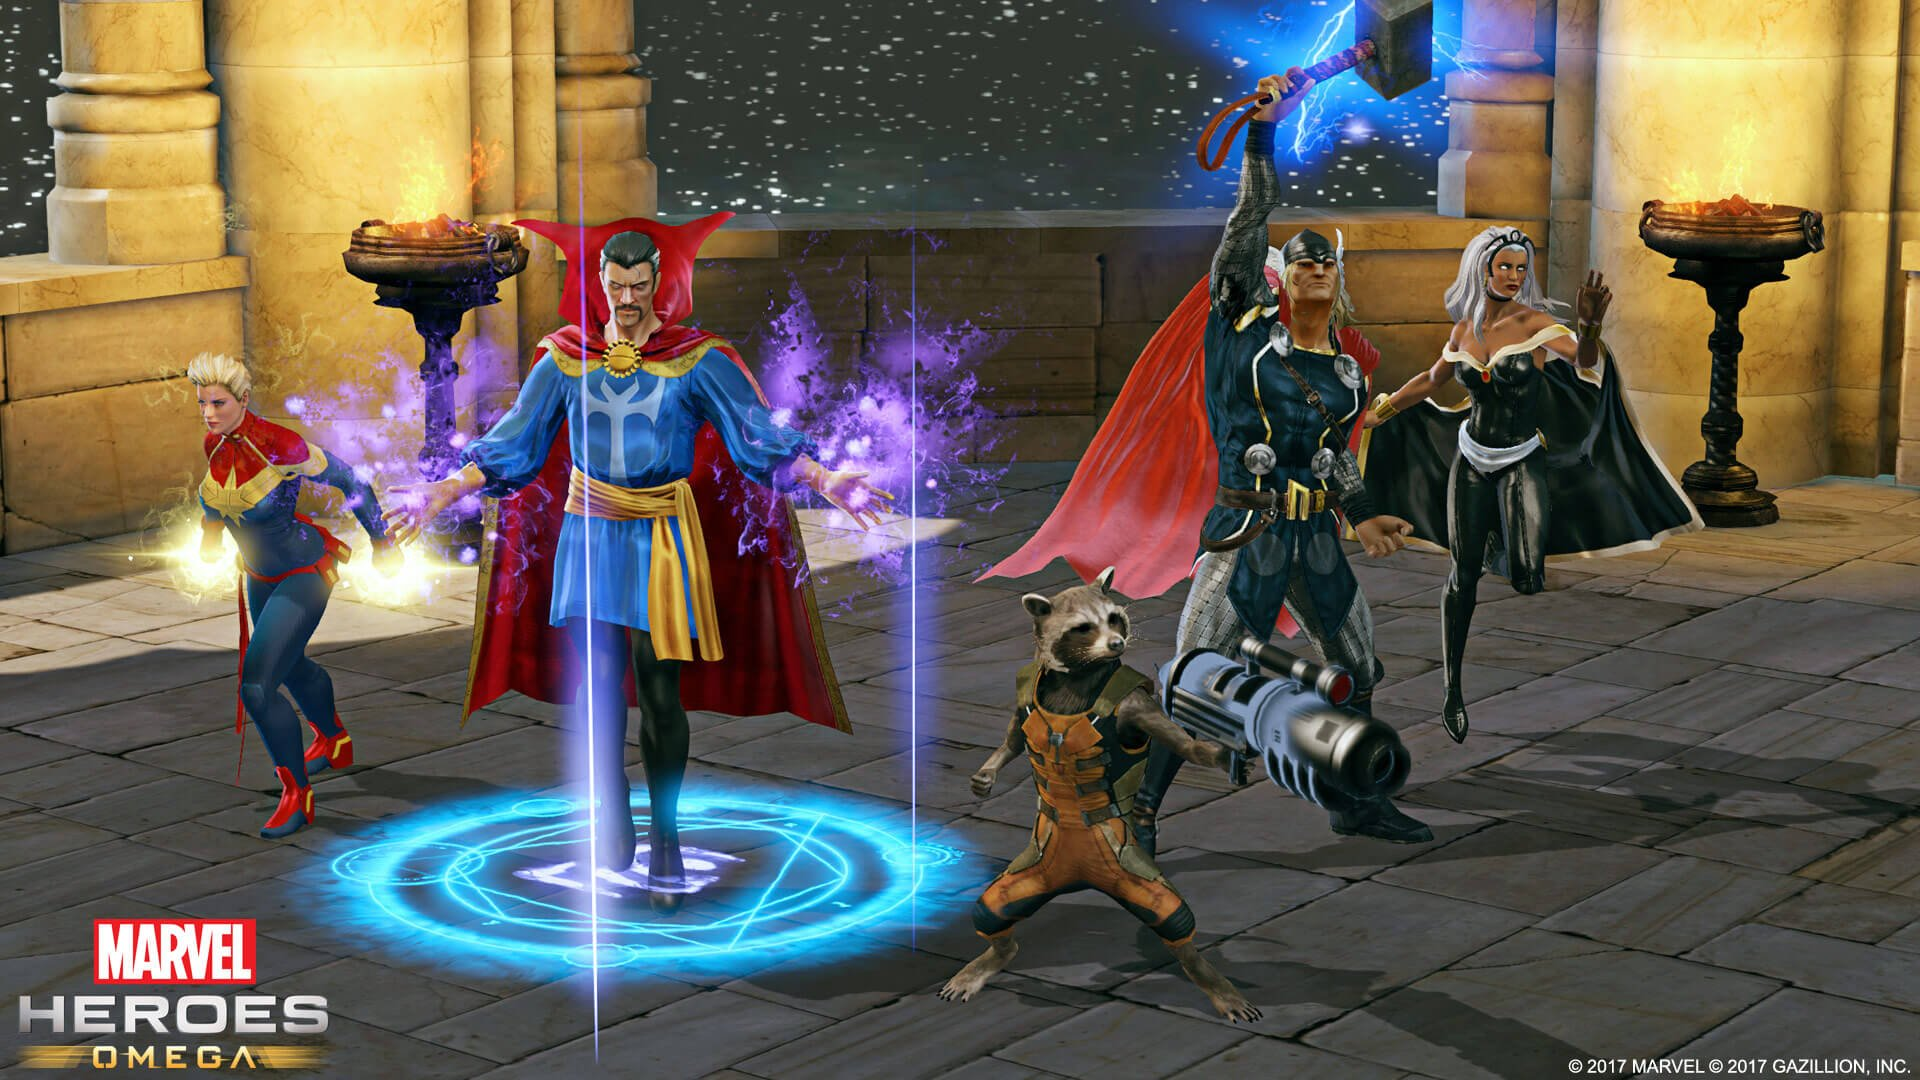 Become a Hero on Consoles with Marvel Heroes Omega Announcement